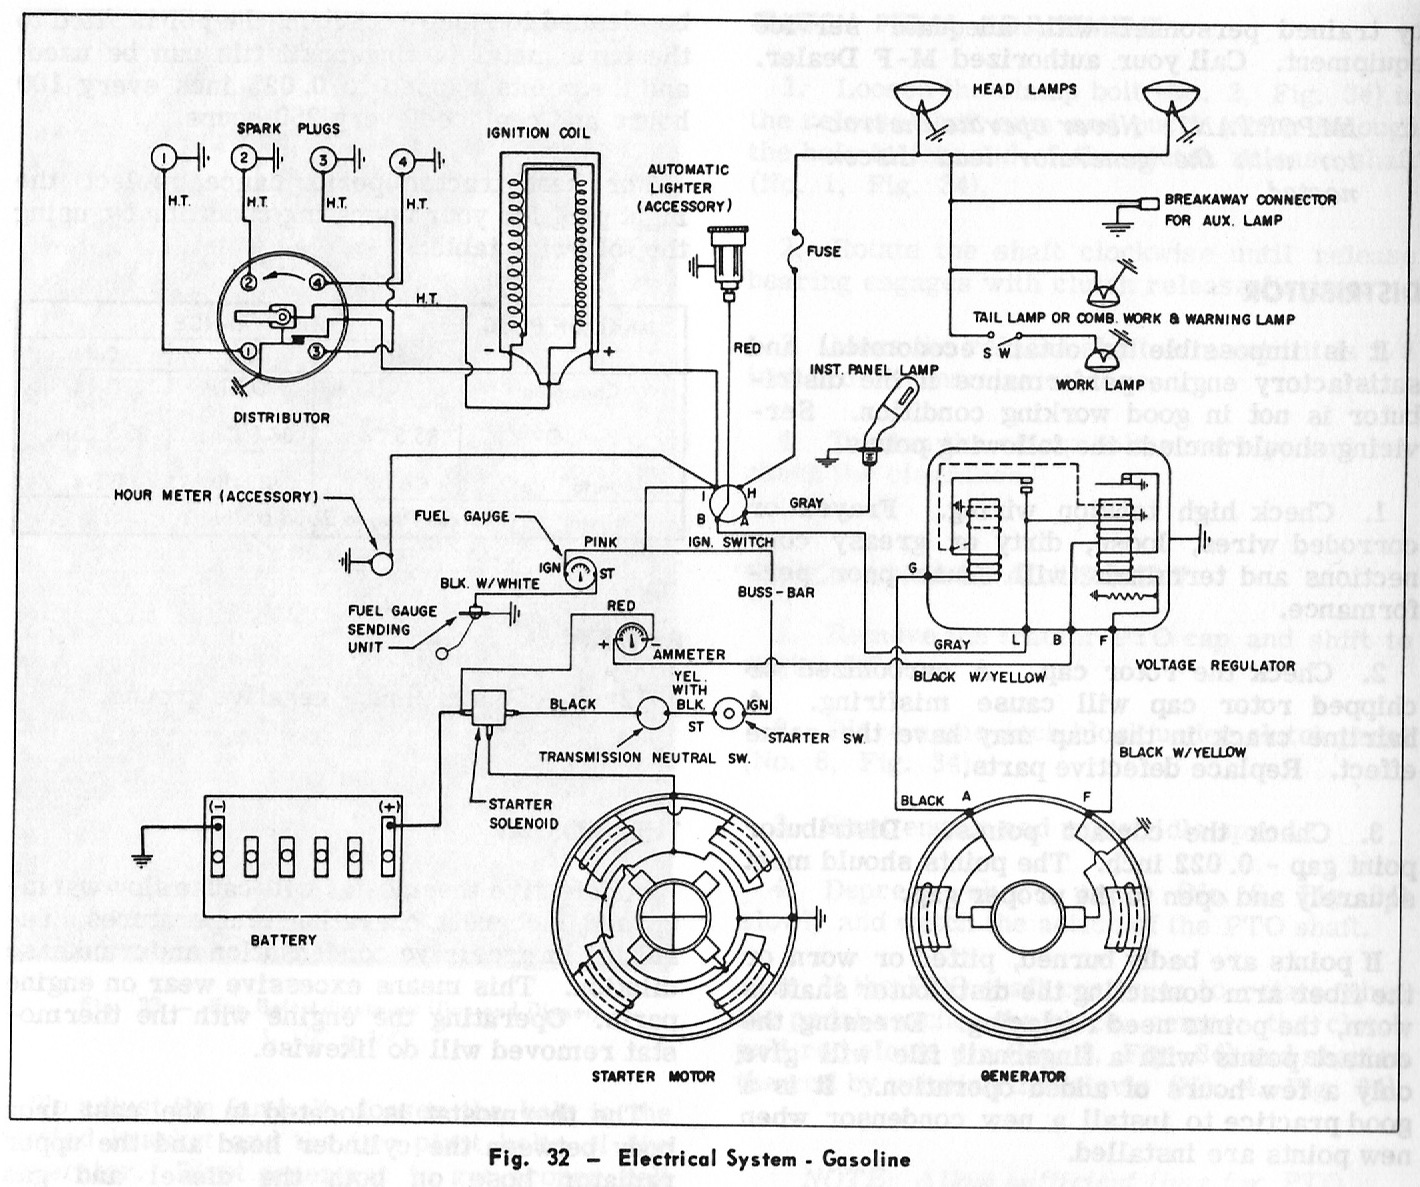 small resolution of mf65 wiring diagram wiring diagram z1 massey ferguson 135 tractor wiring diagram mf 65 wiring diagram